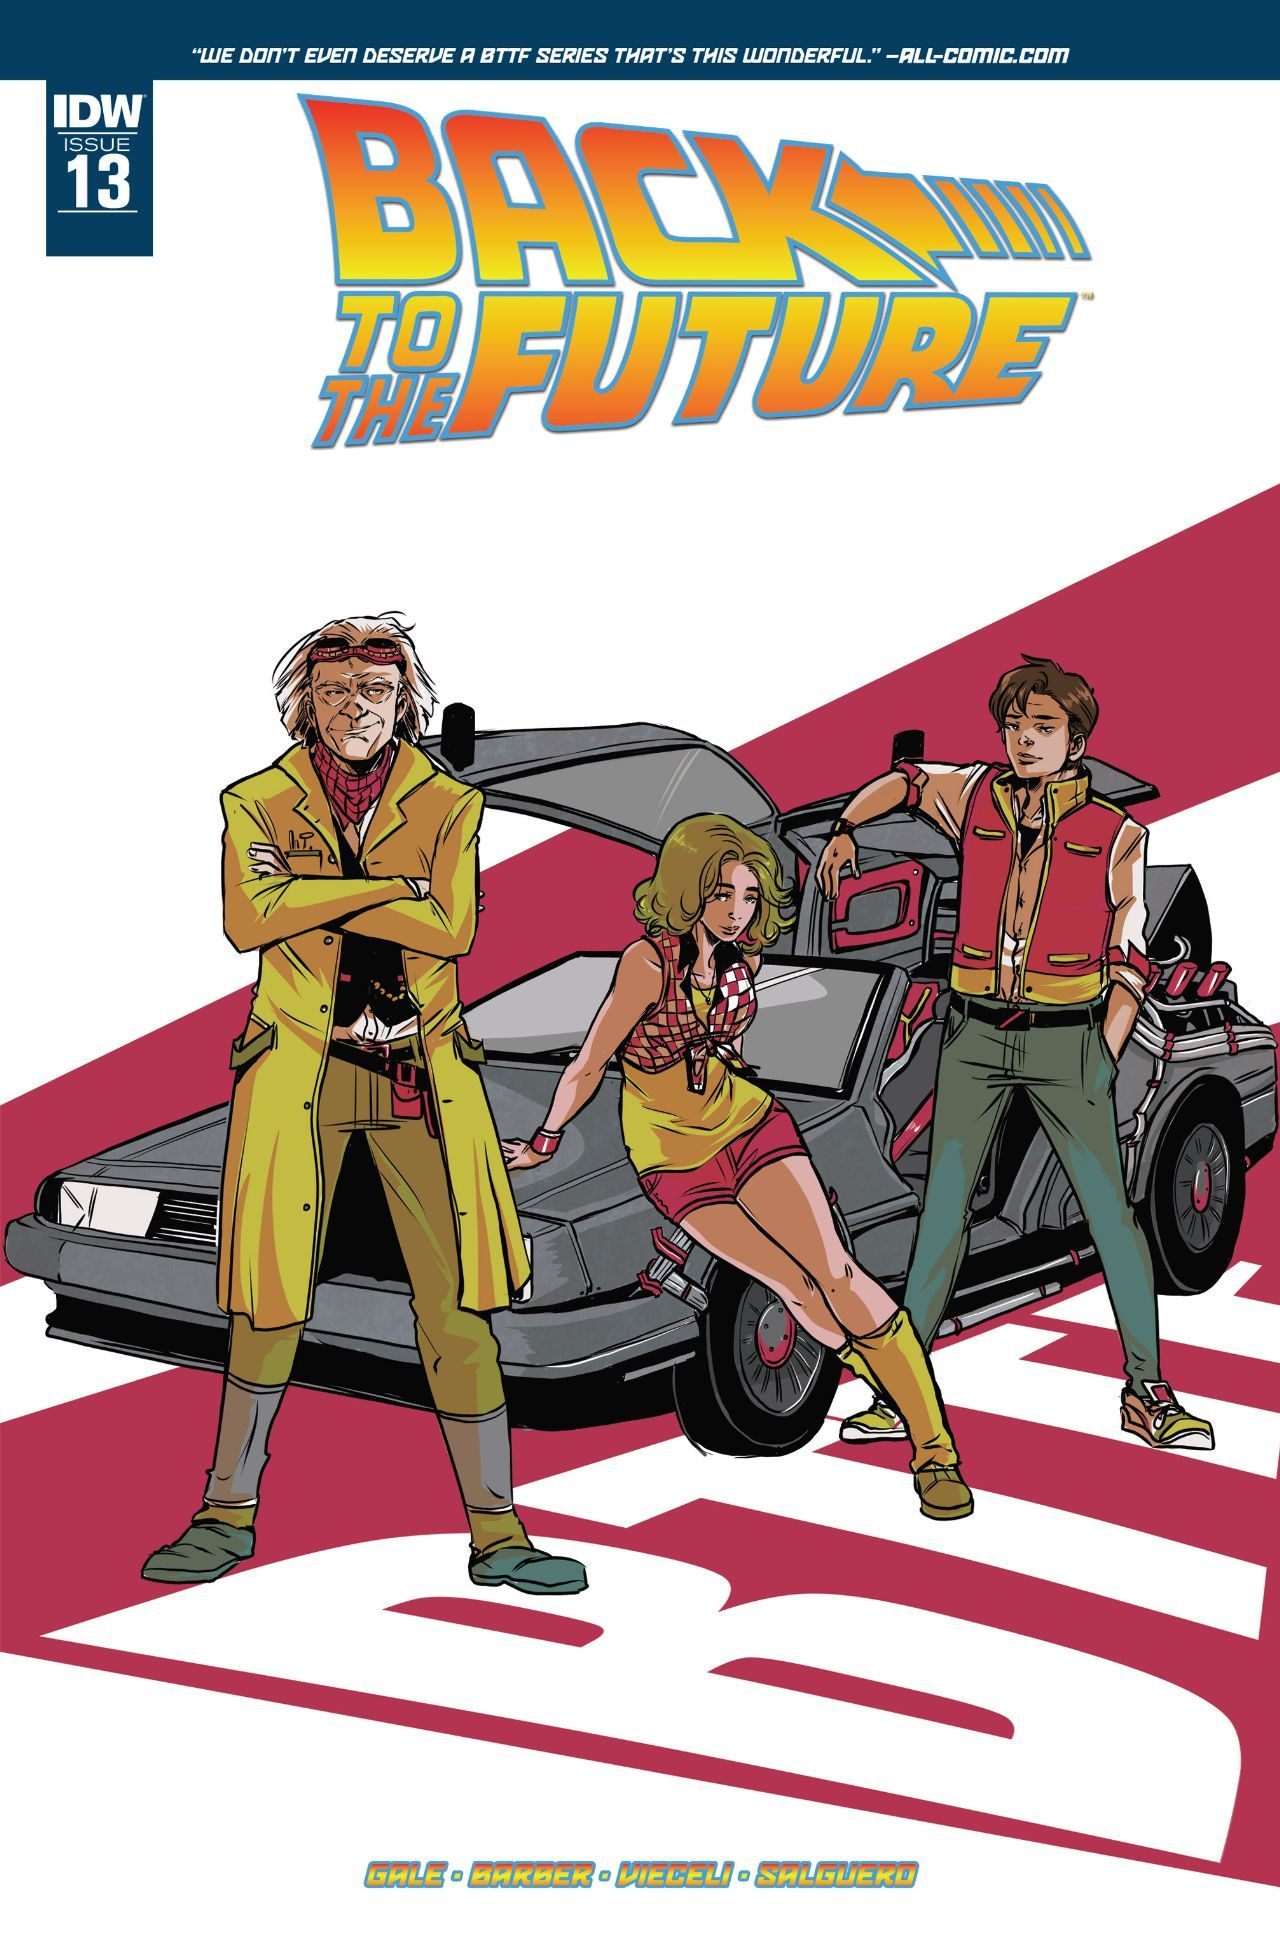 Back to the Future #13 #IDW @idwpublishing #BackToTheFuture Release Date: 10/19/2016